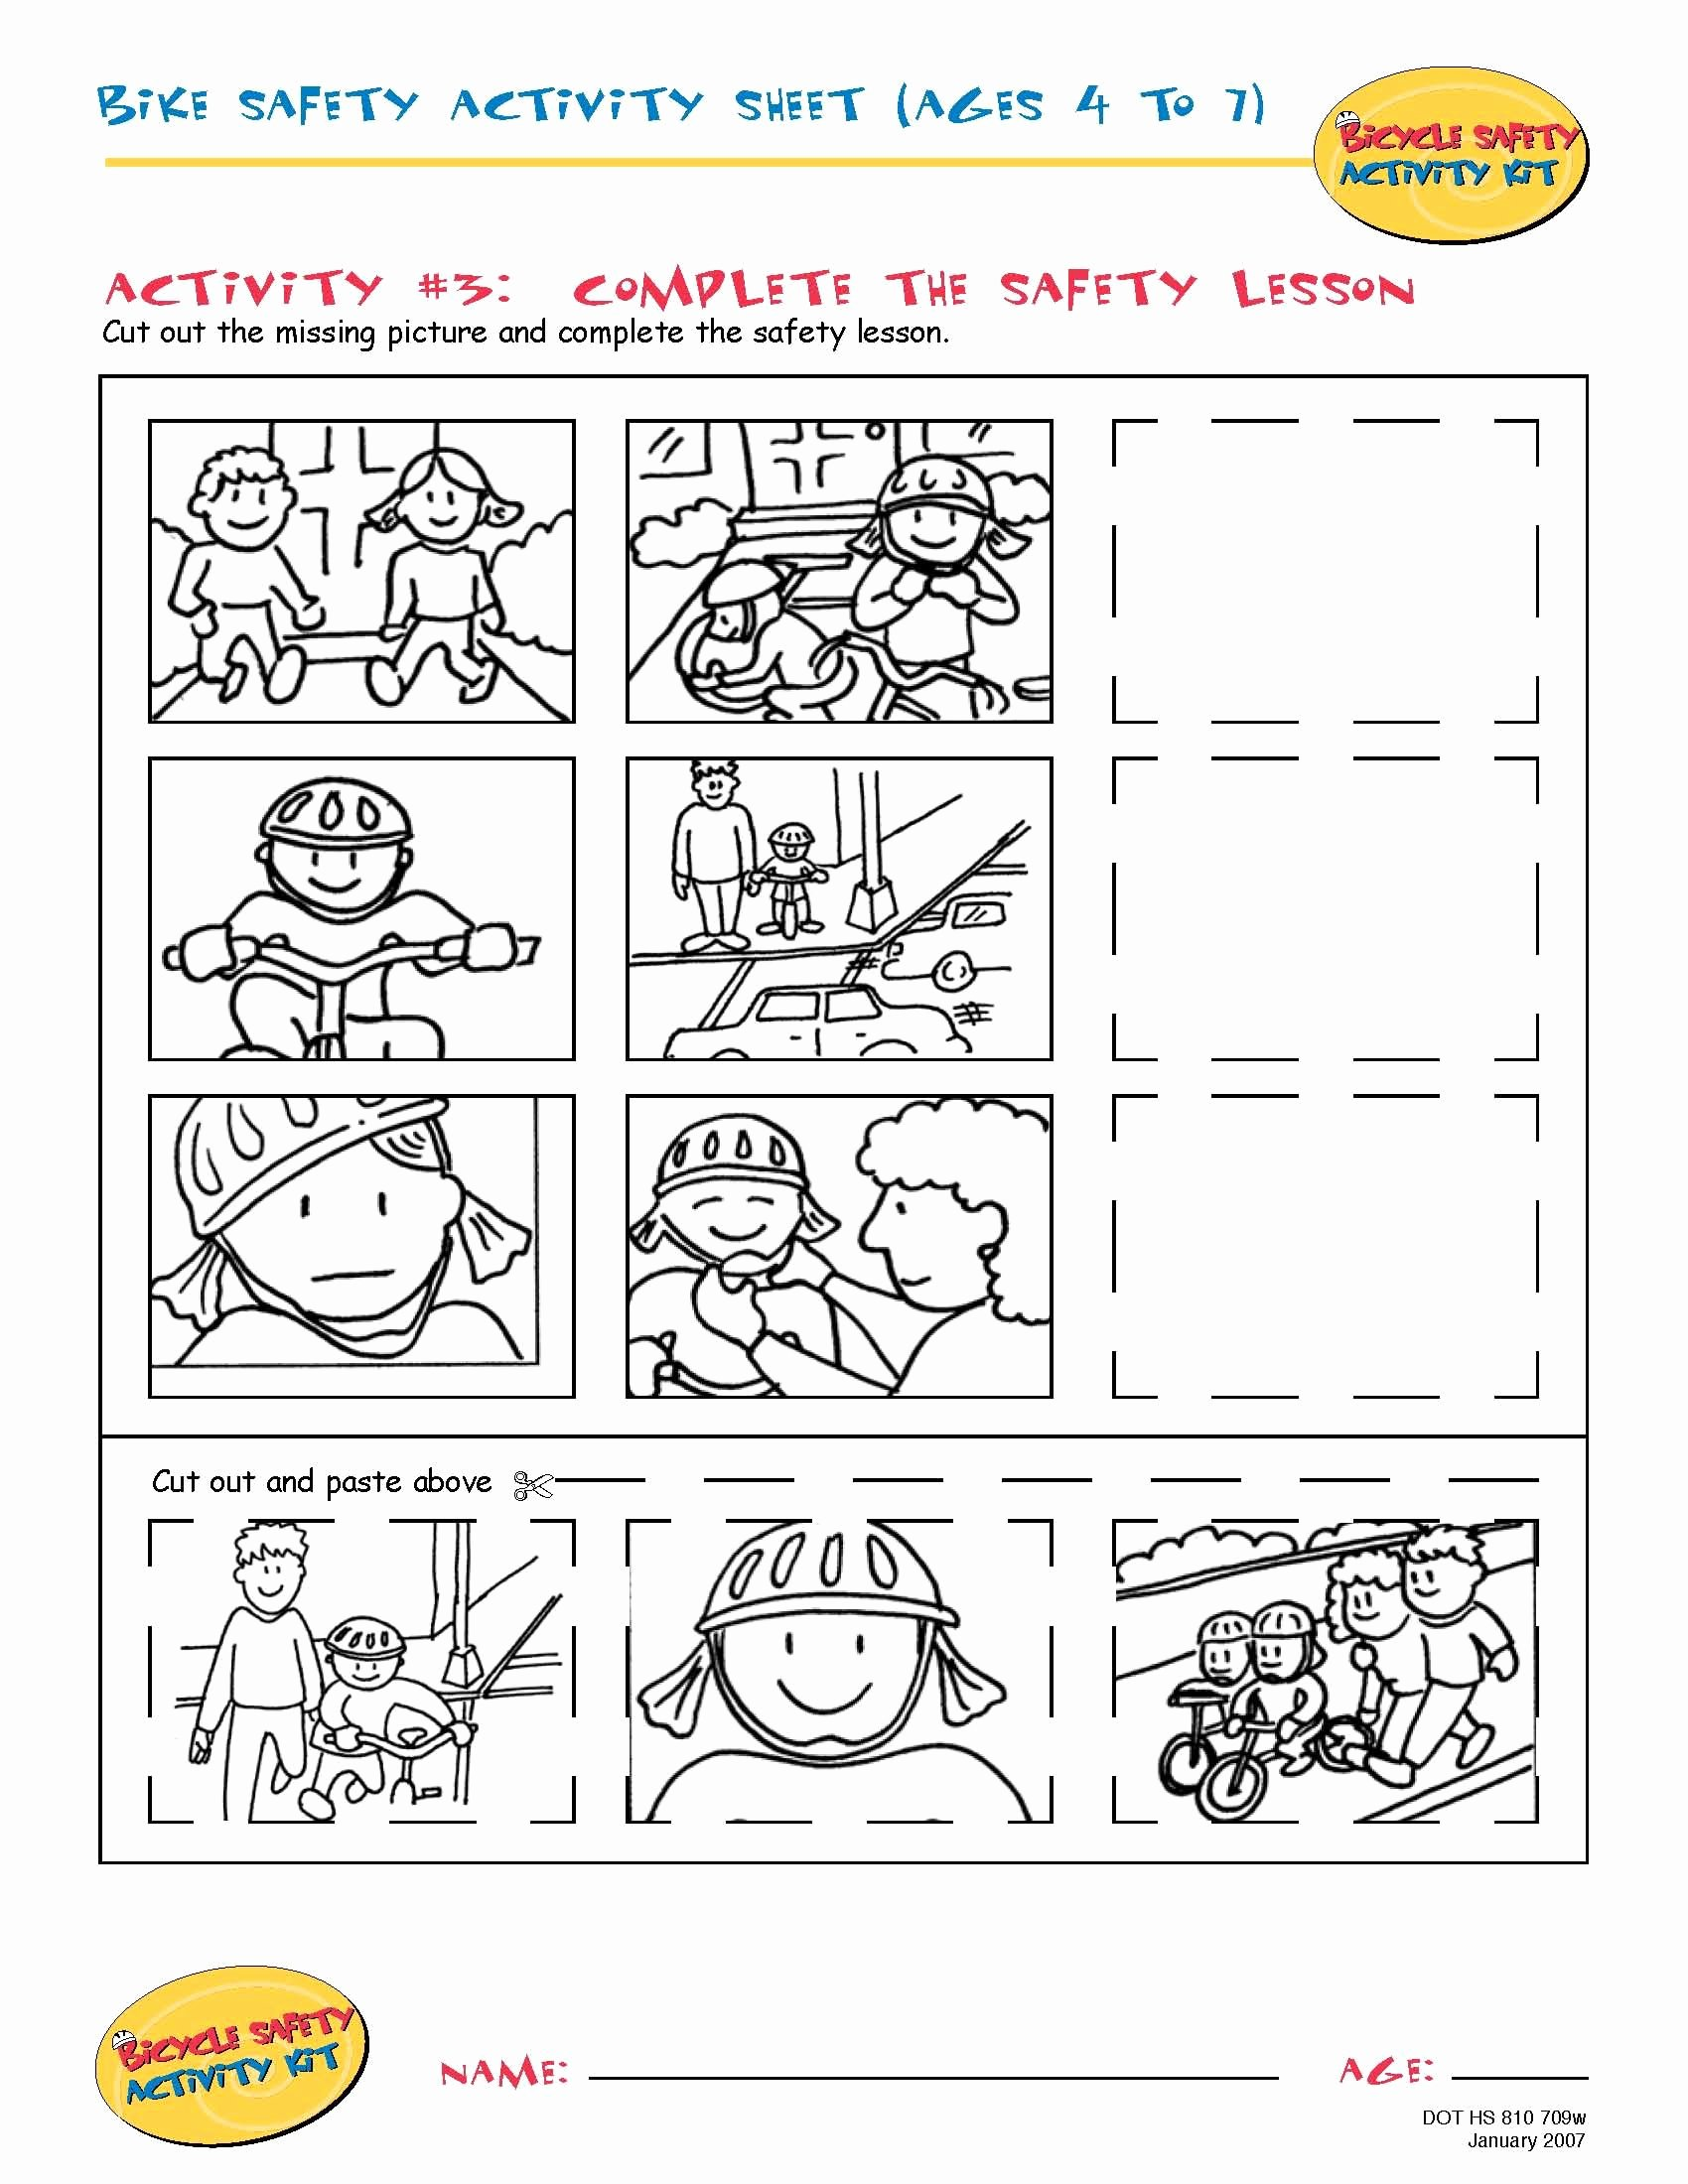 Safety Worksheets for Preschoolers Inspirational Bike Safety Activity Sheet Ages 4 to 11 Plete the